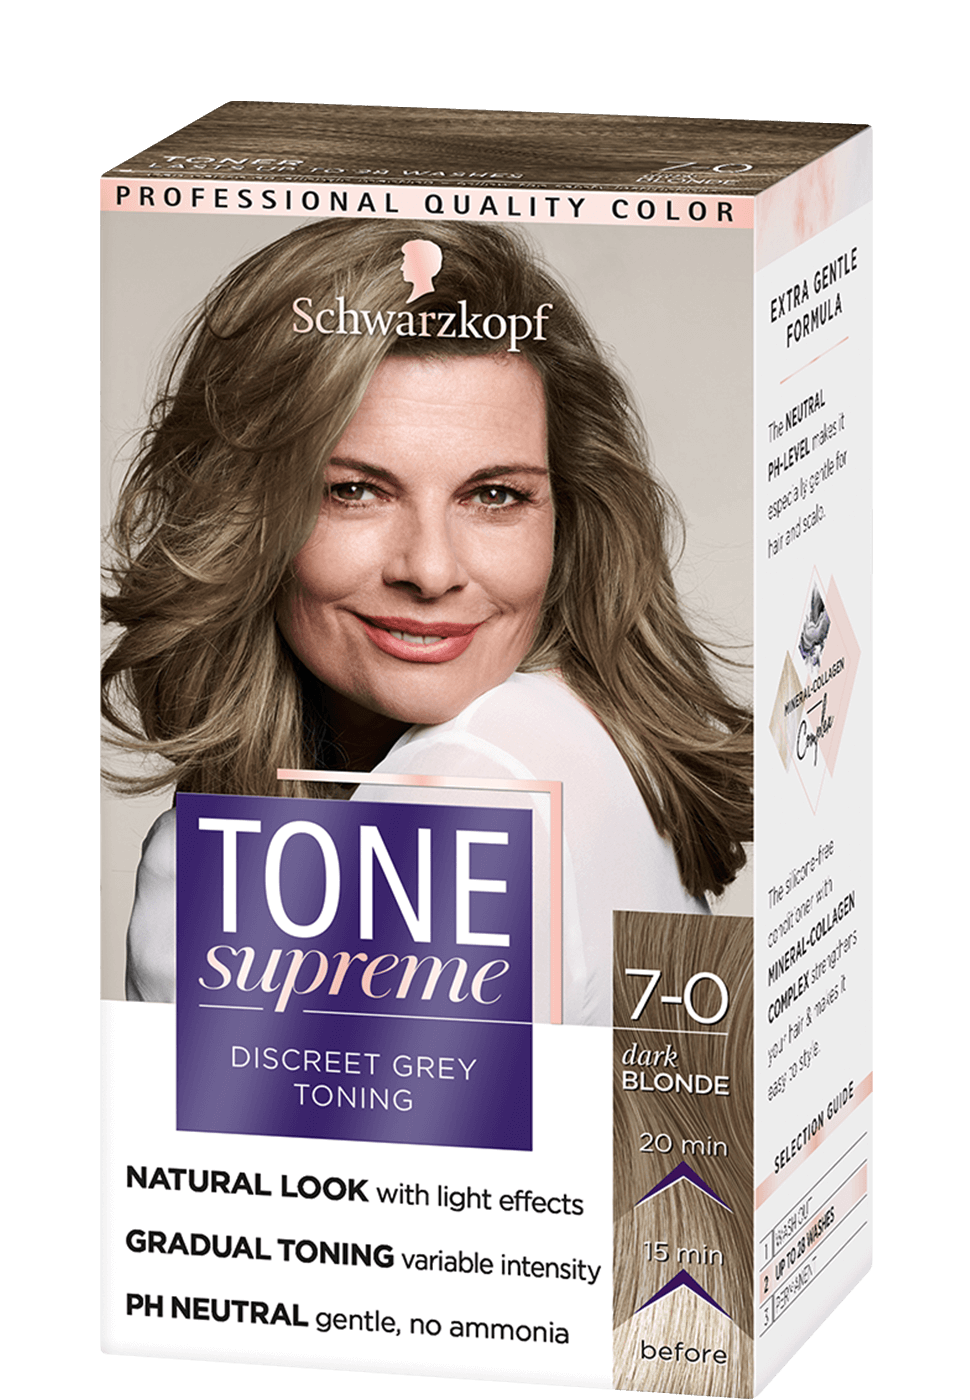 tone_supreme_int_baseline_7_0_dark_blonde_970x1400